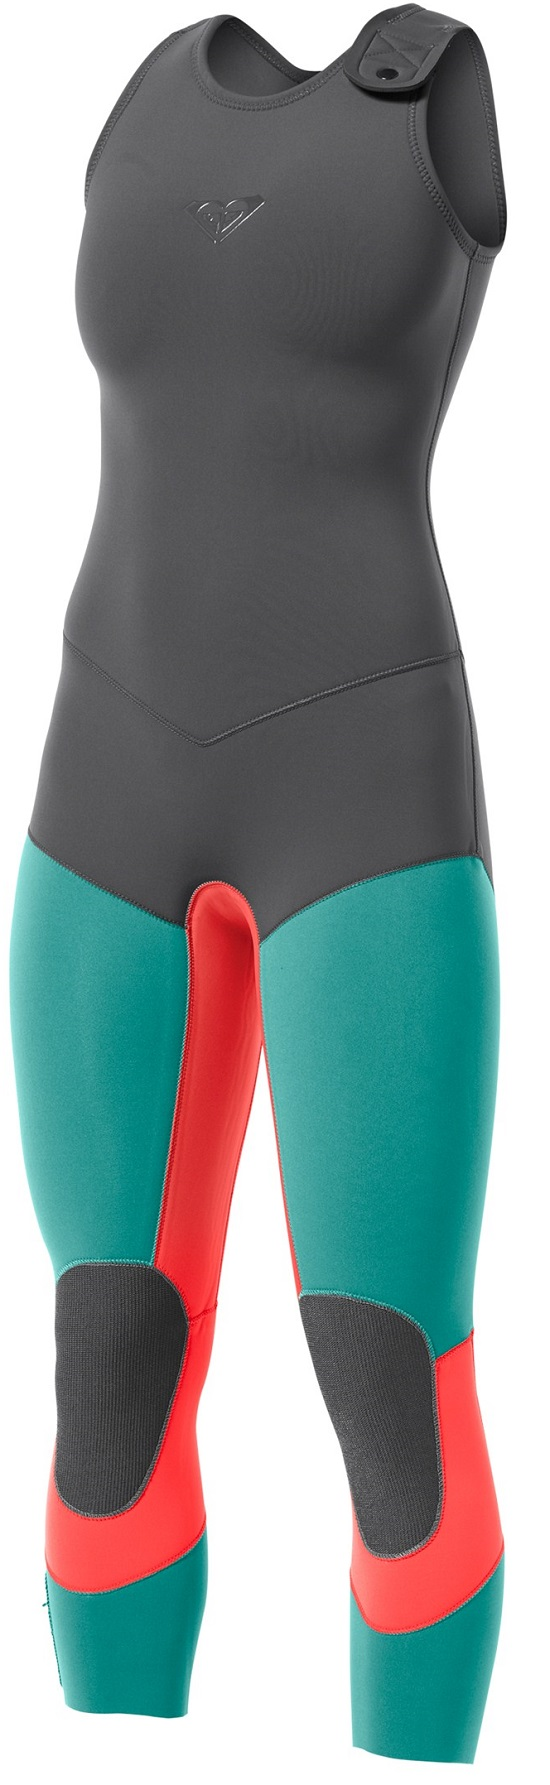 Roxy Kassia Meador Wetsuit 3mm Long John Wetsuit Limited Edition - New Fall Color! - ARJW700000-XKMG